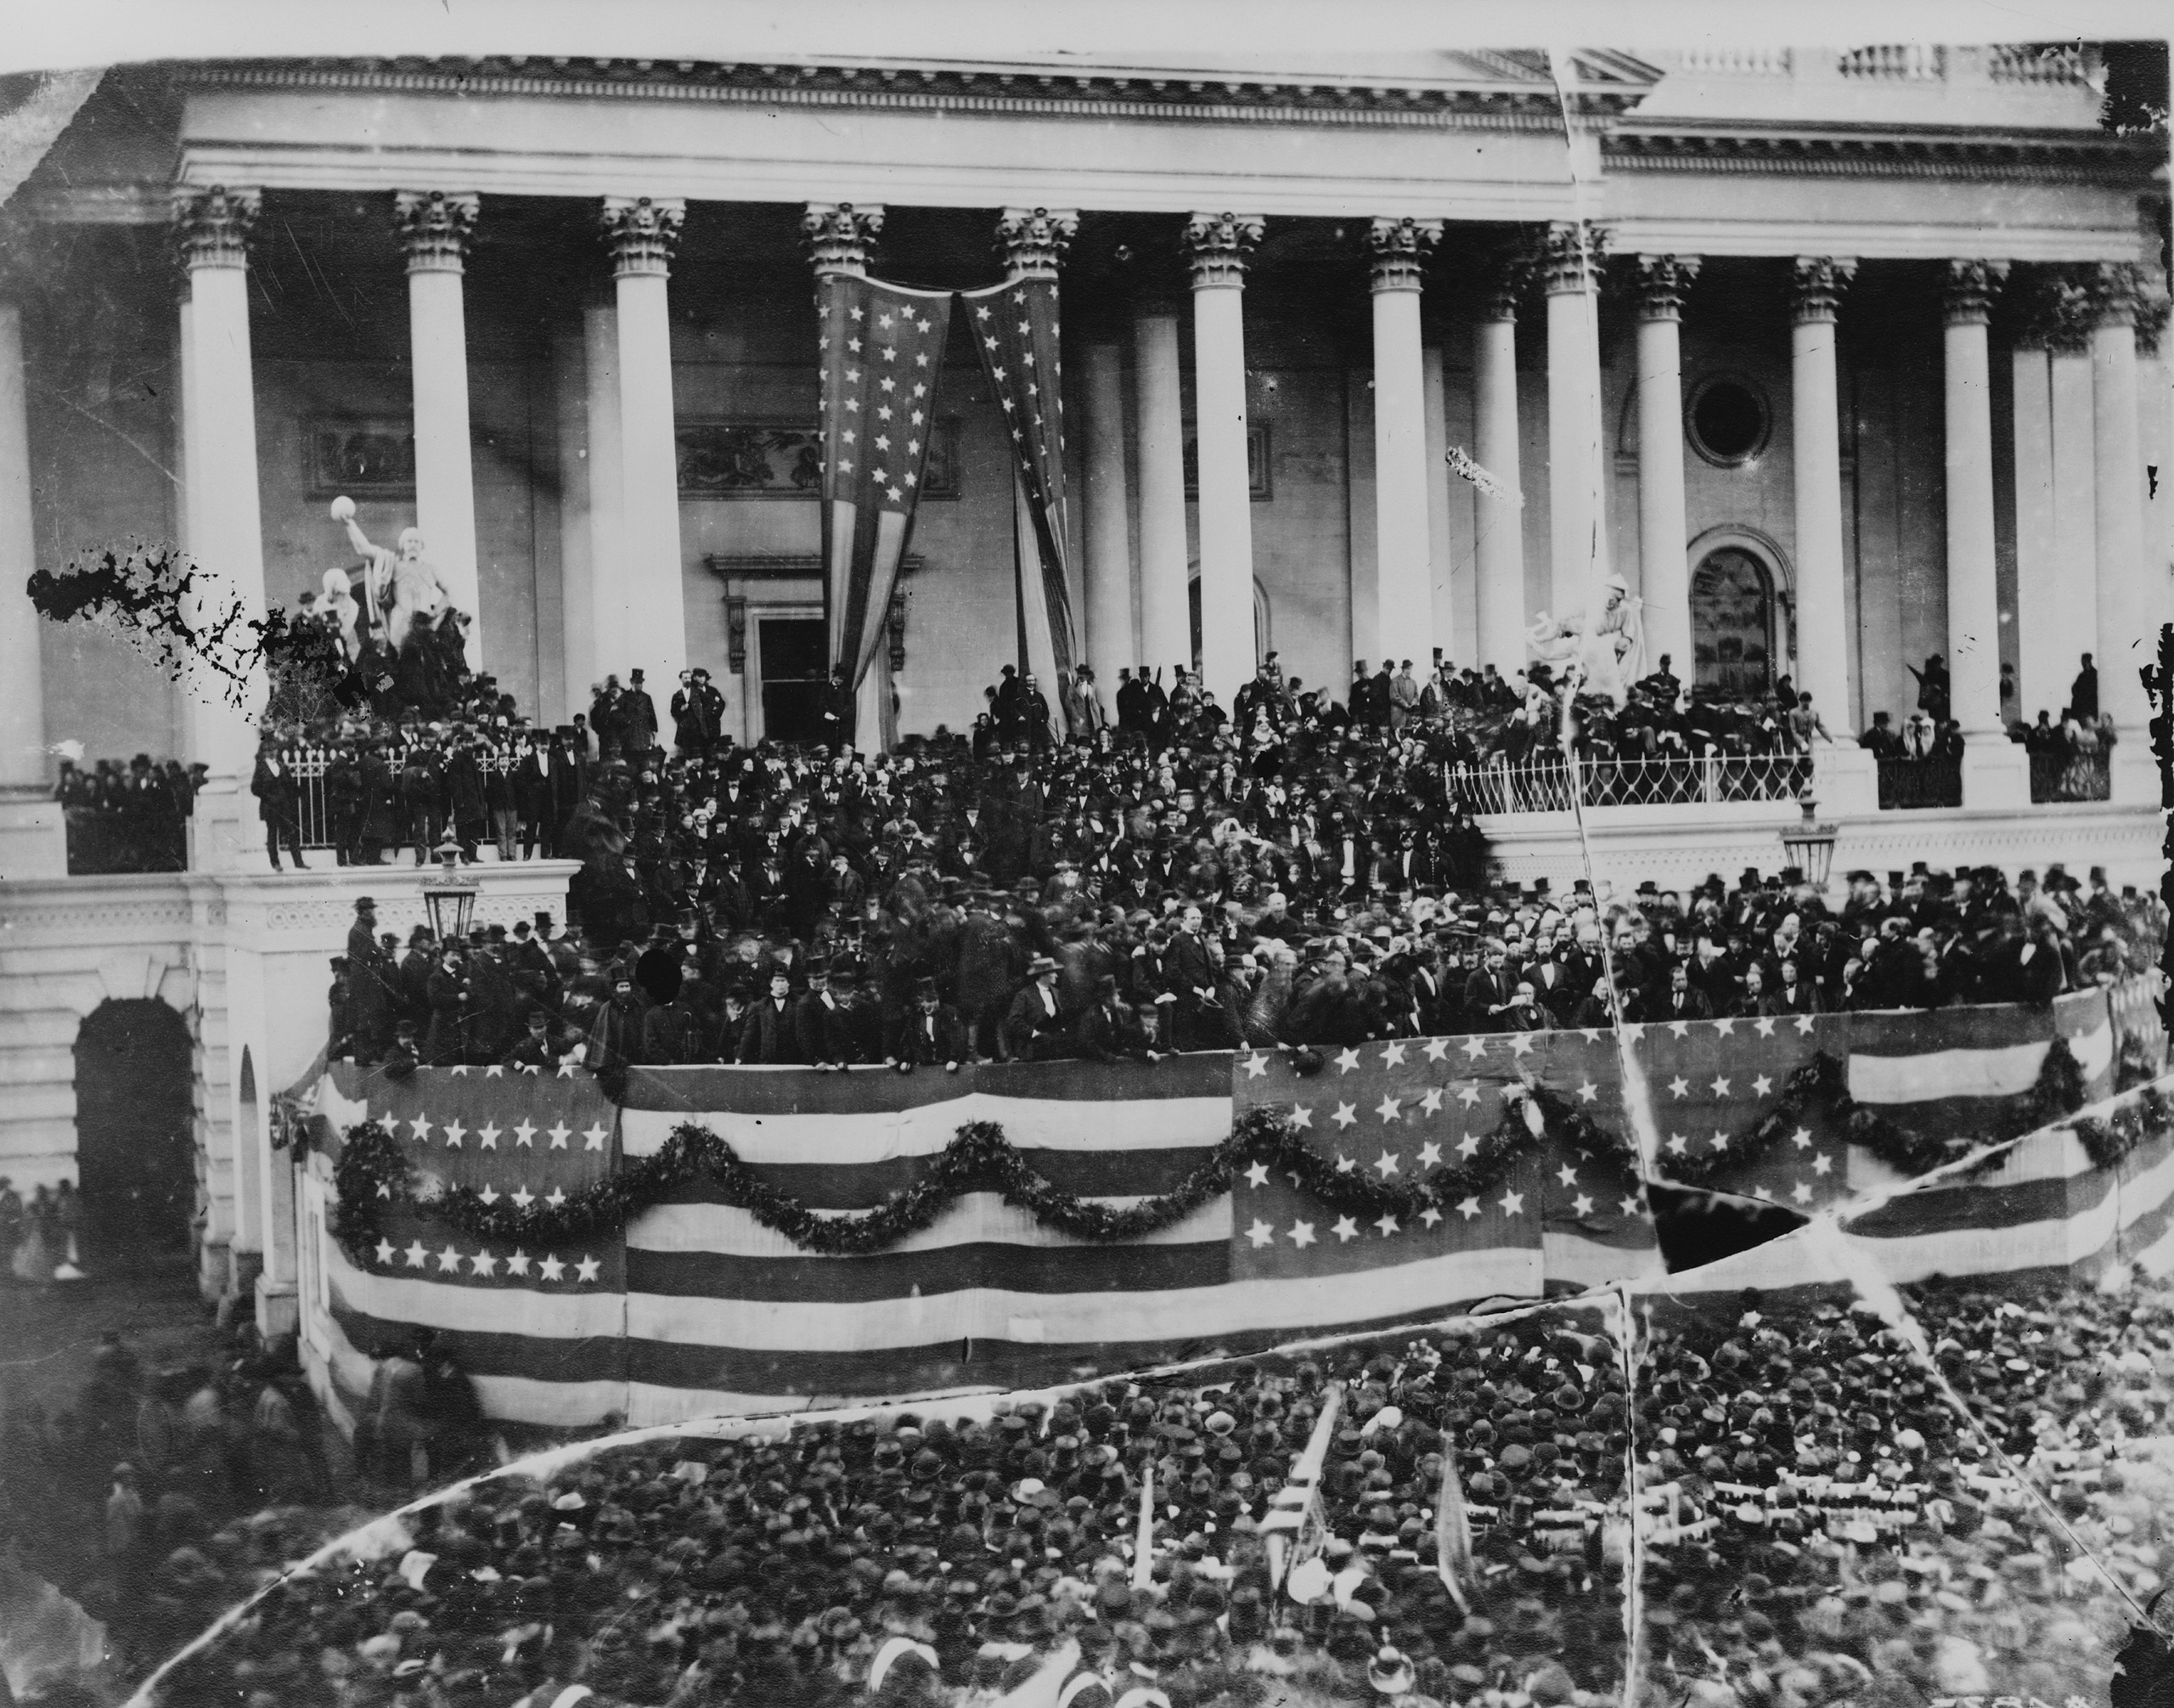 President Ulysses S. Grant delivering his inaugural address on the east portico of the U.S. Capitol, March 4, 1873. Photo by Matthew Brady.